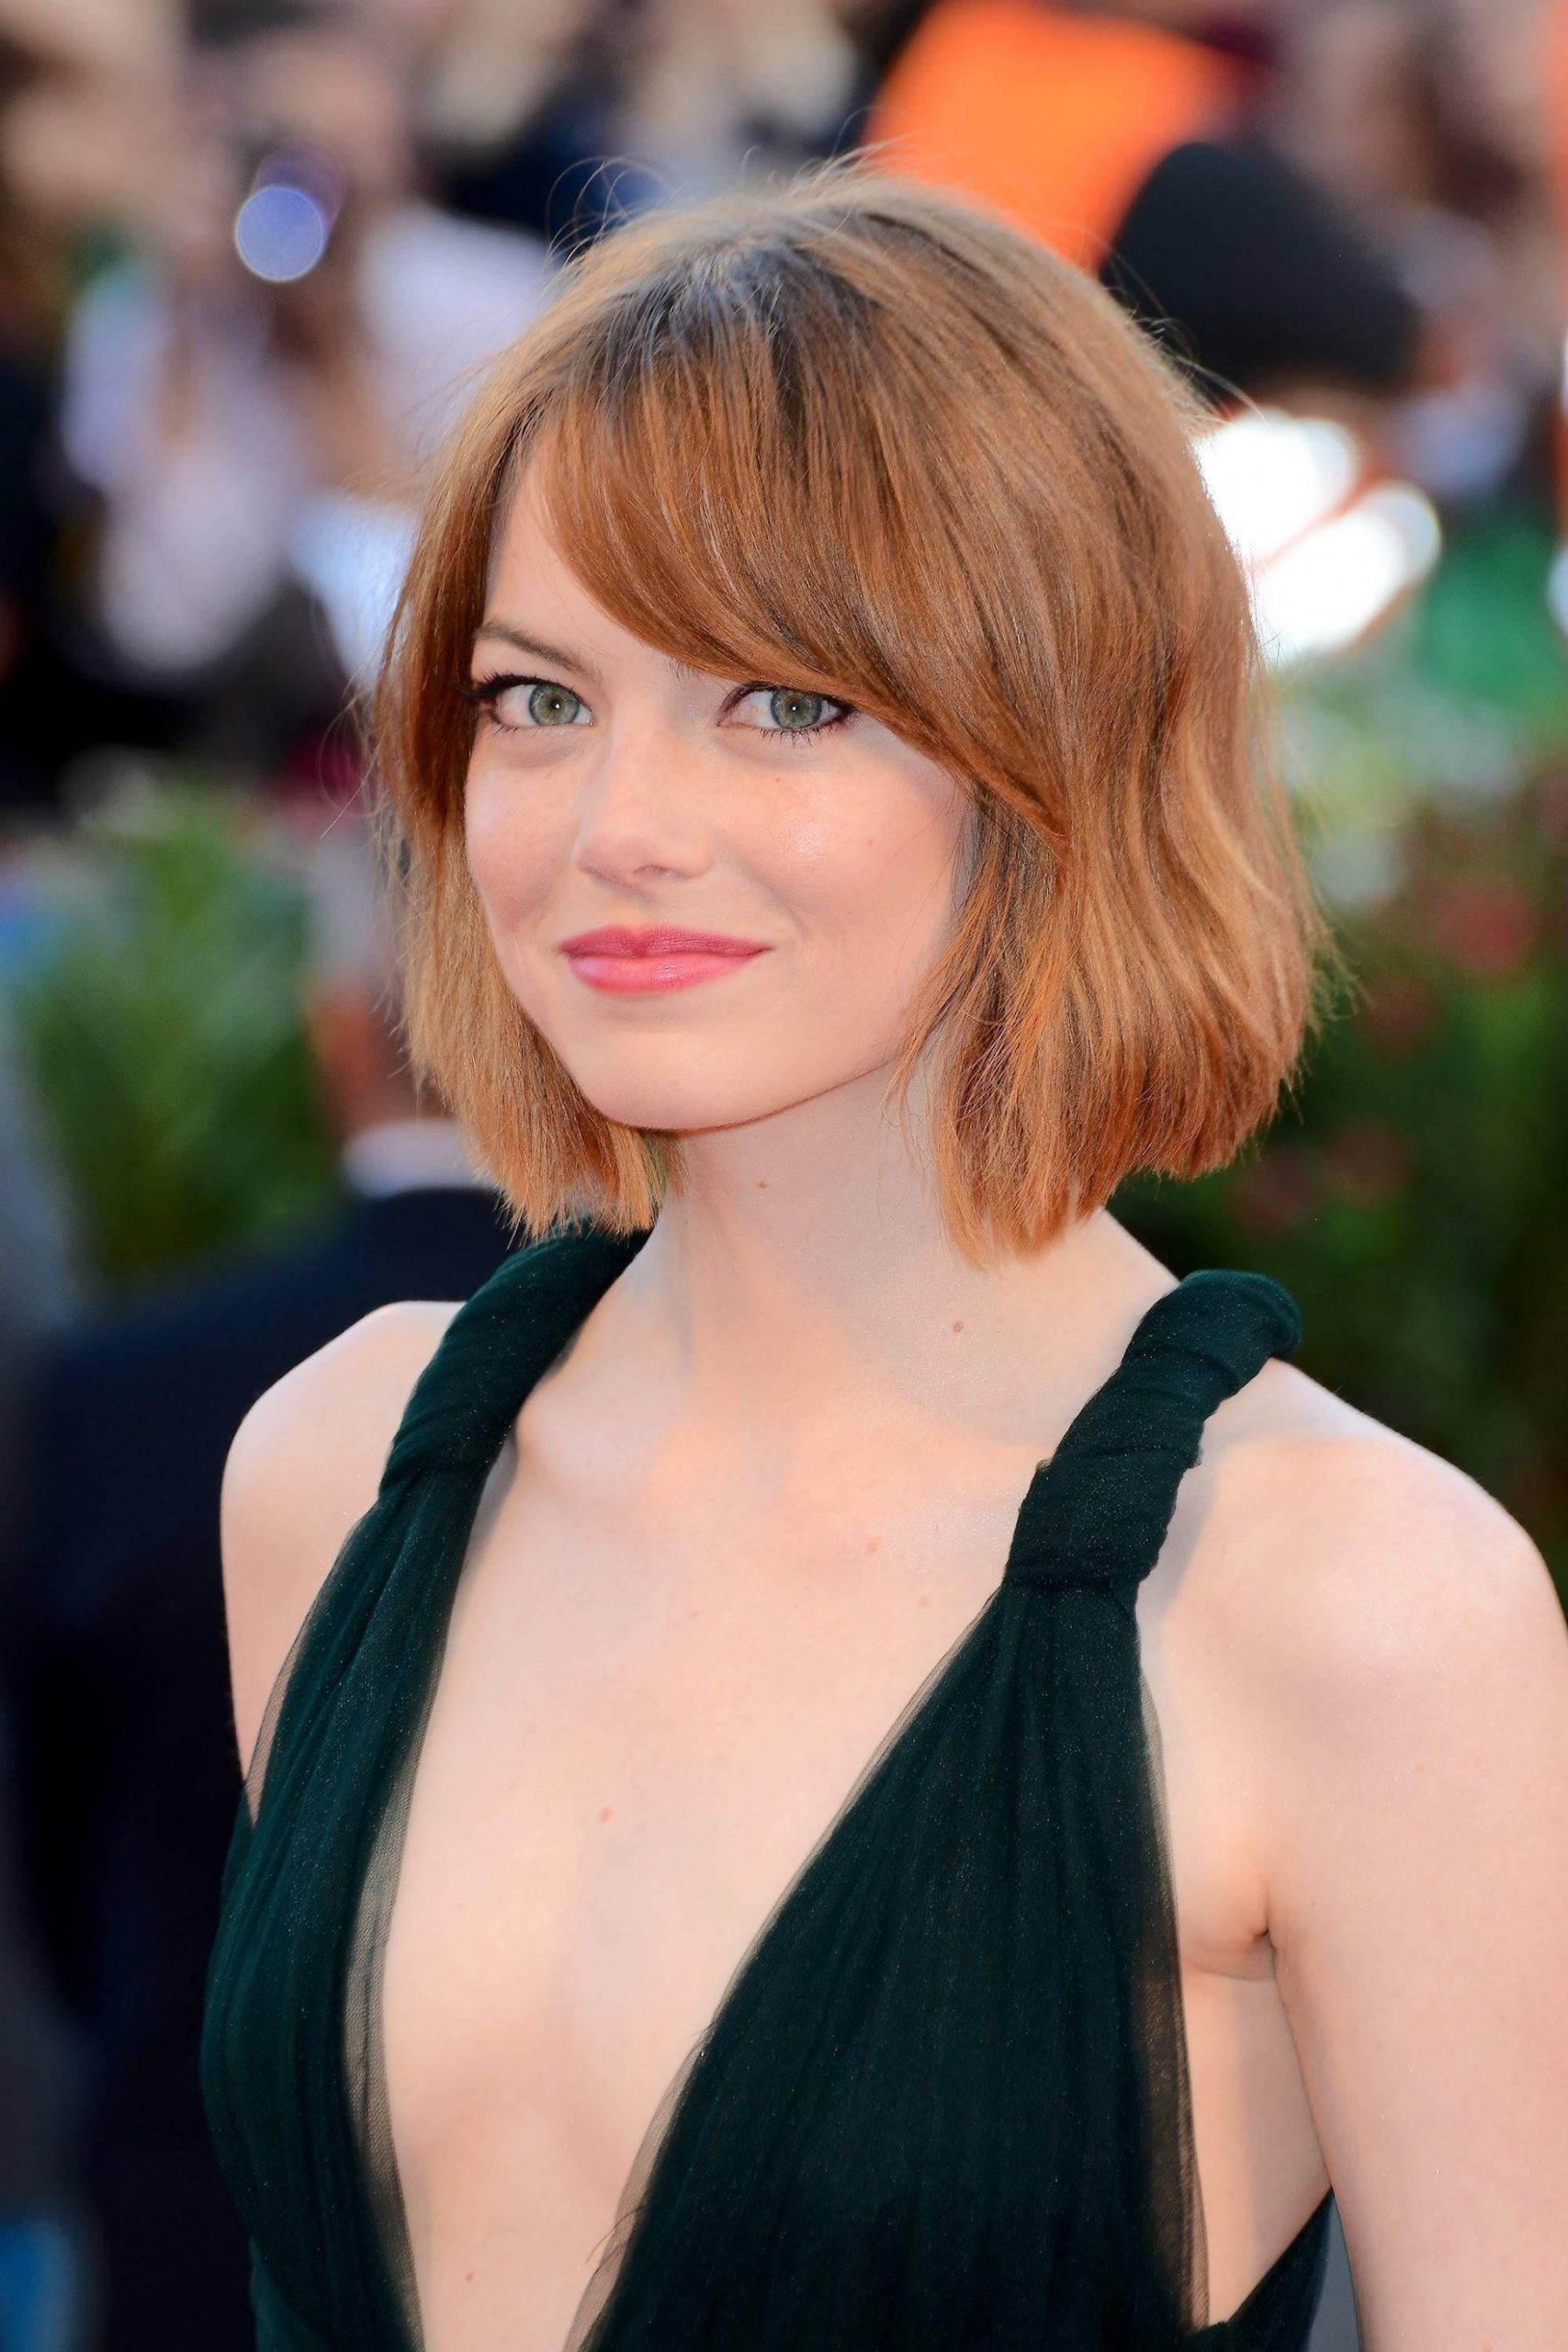 8 Flattering Ways To Pull Off Bangs For Round Face Shapes Bangs For Round Face